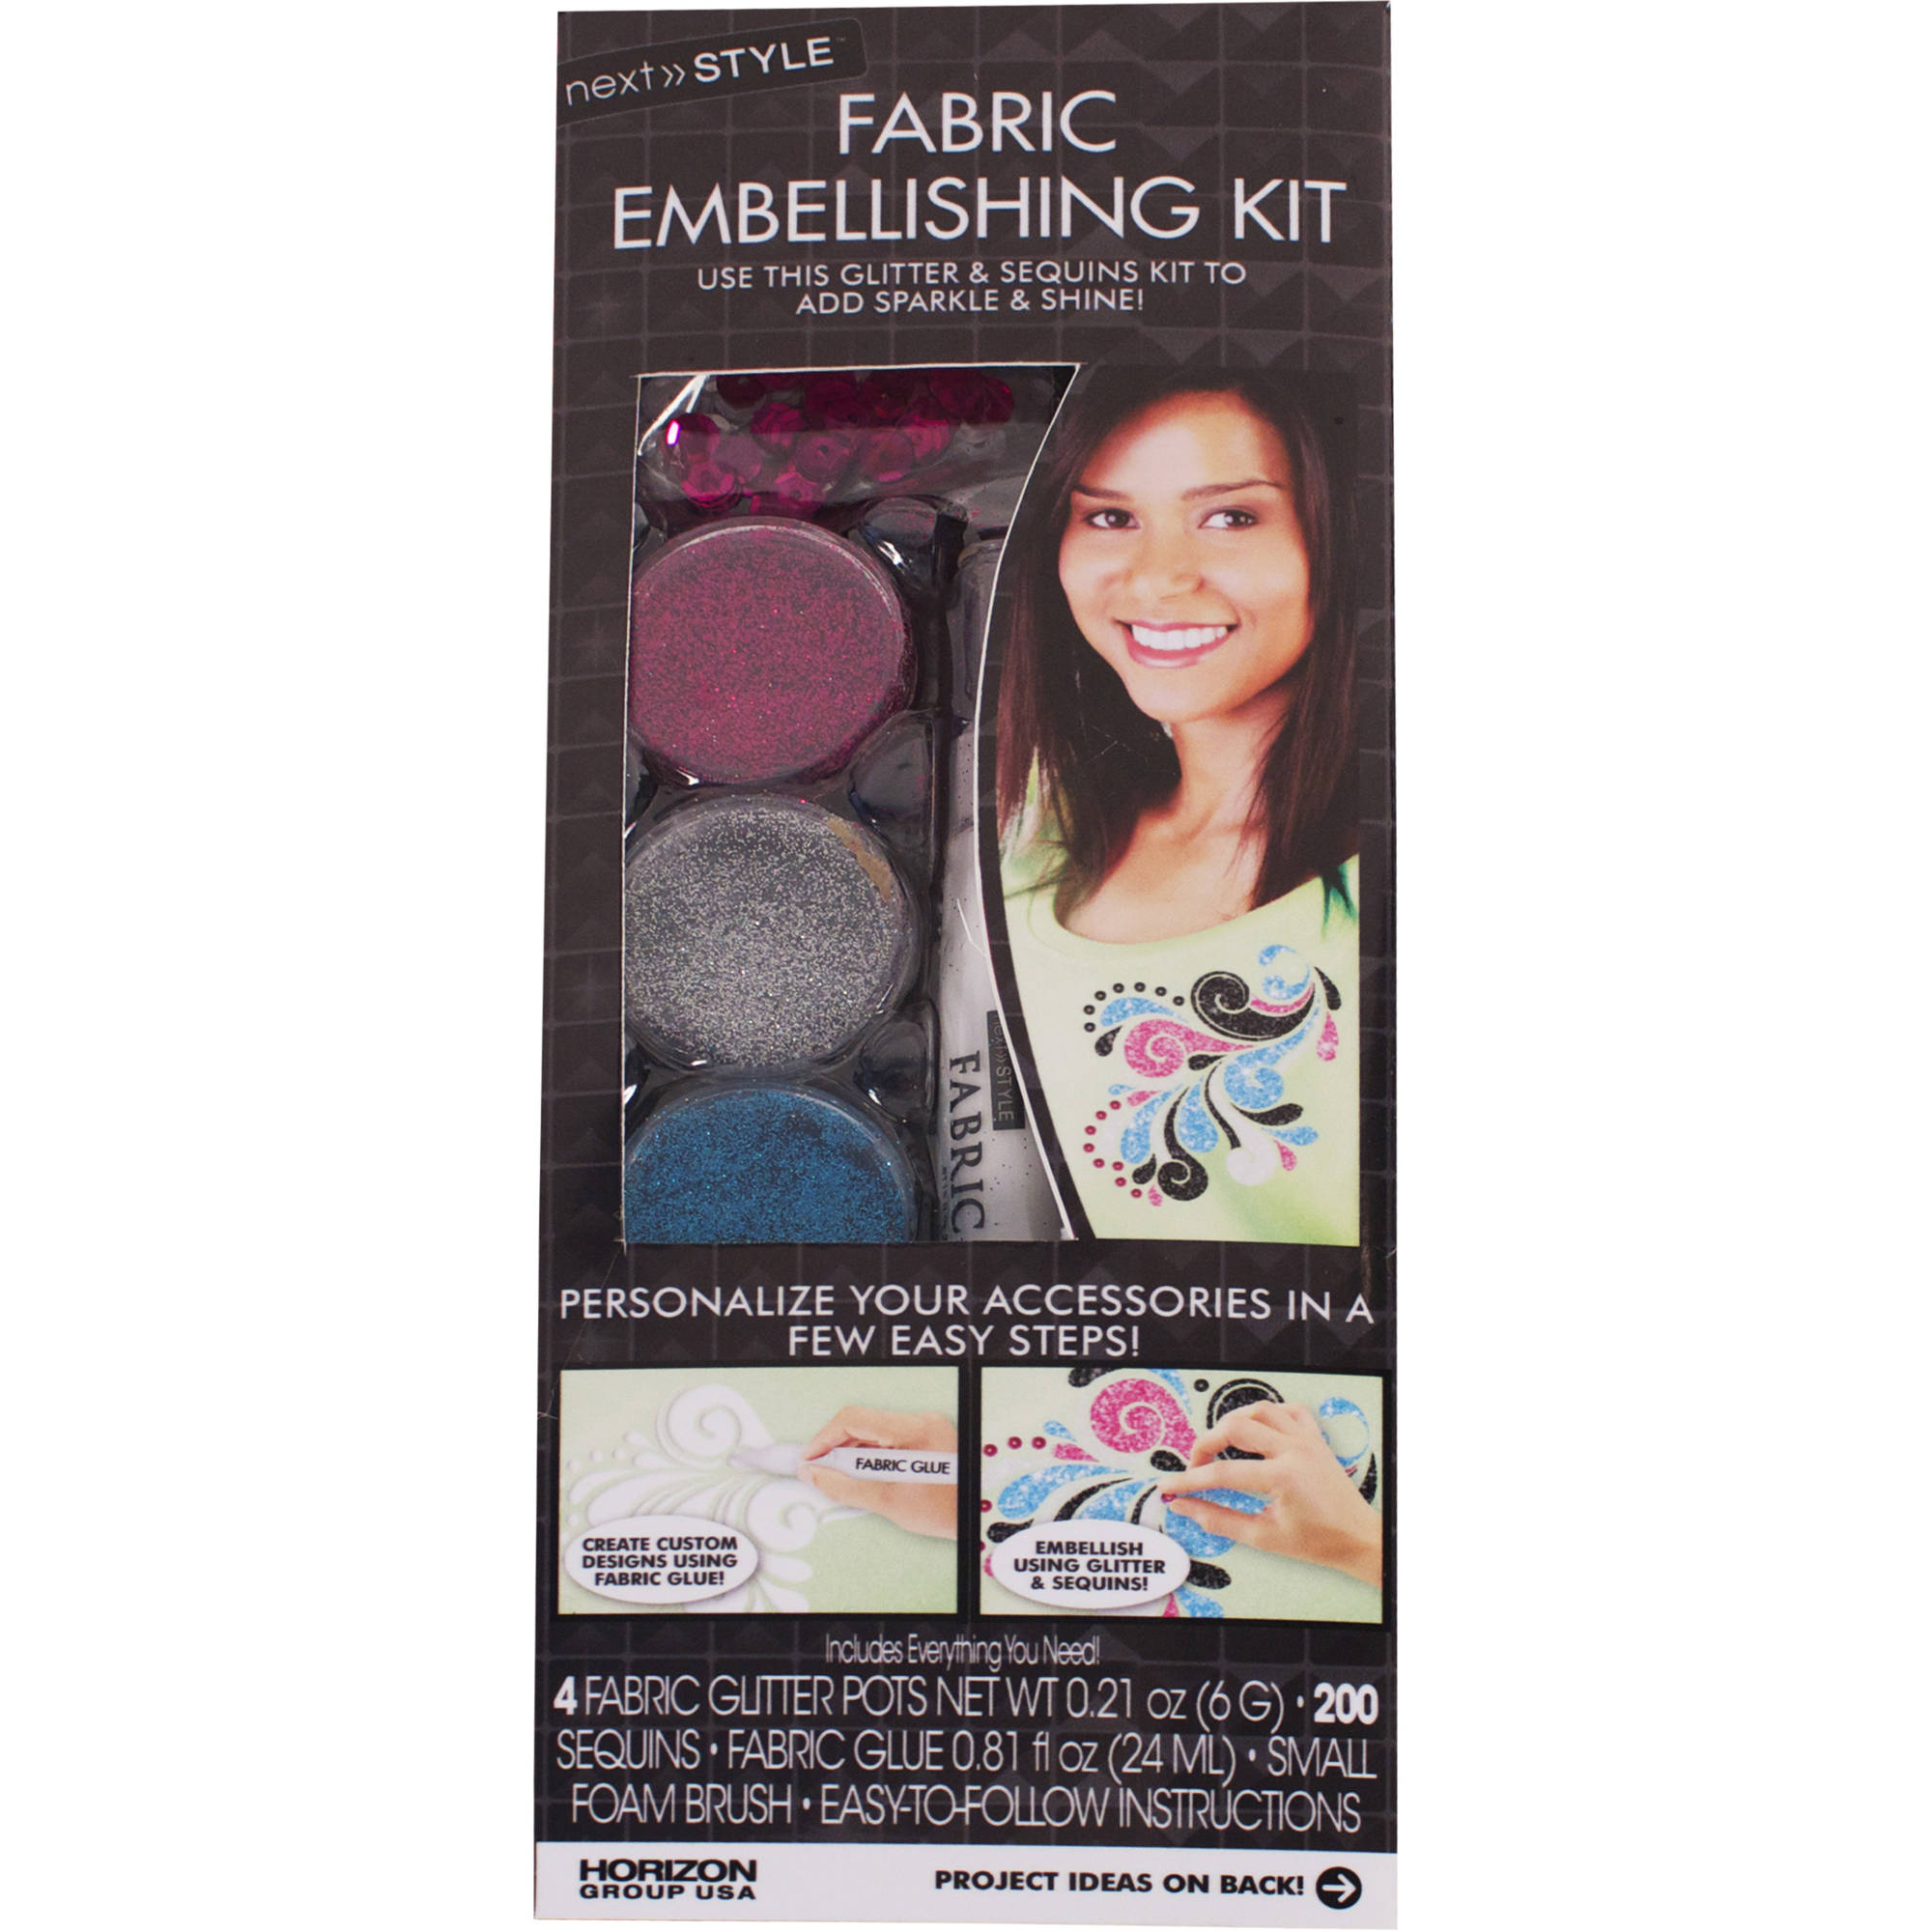 Next Style? Fabric Embellishing Kit by Horizon Group USA